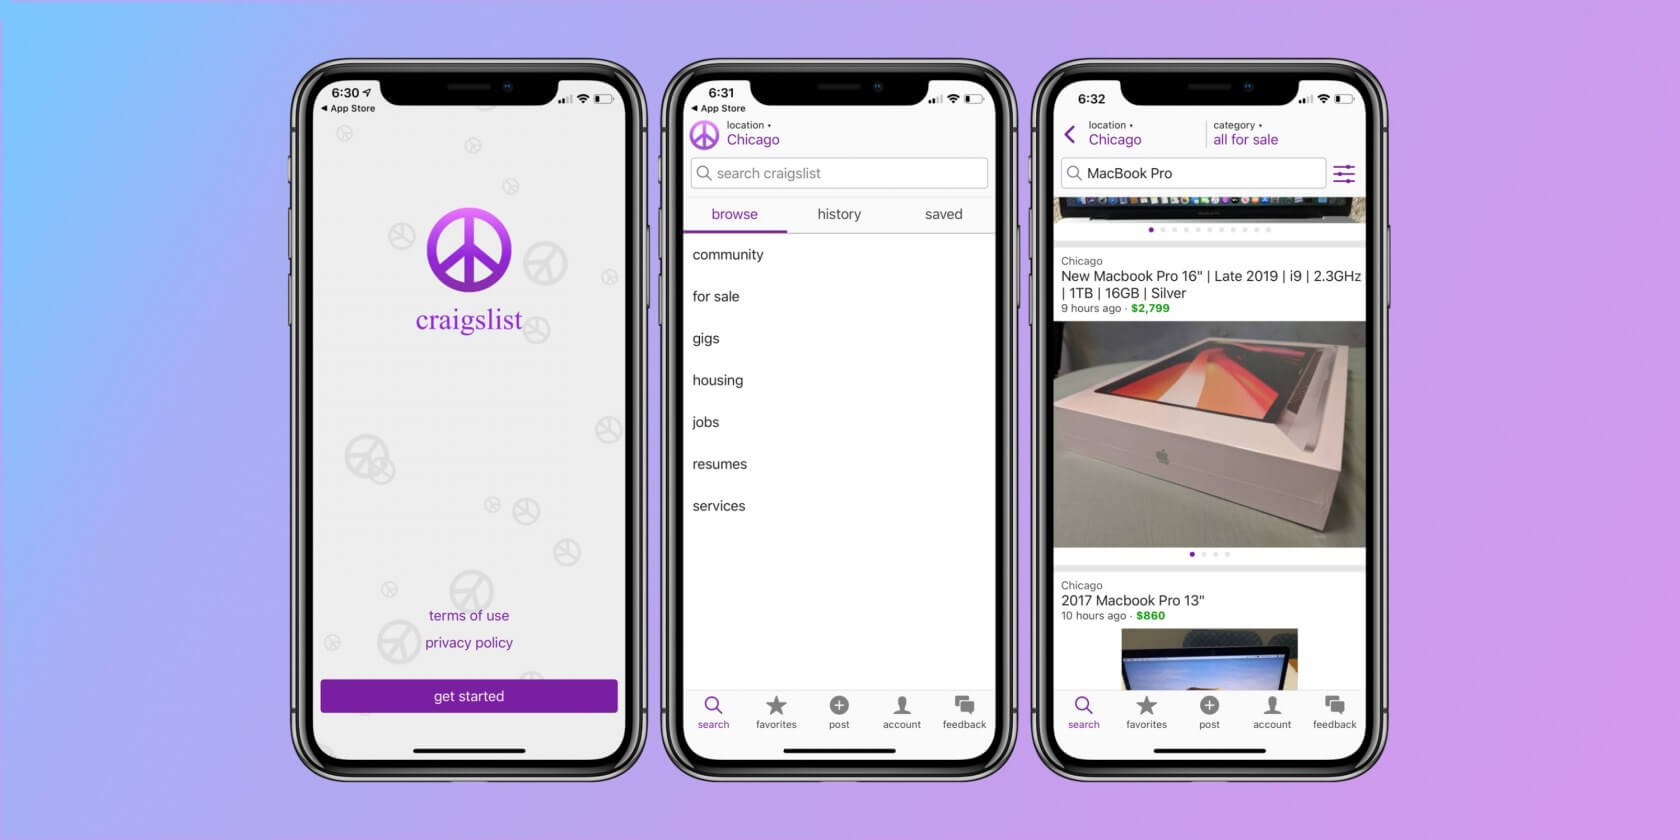 Craigslist has finally received its own mobile app